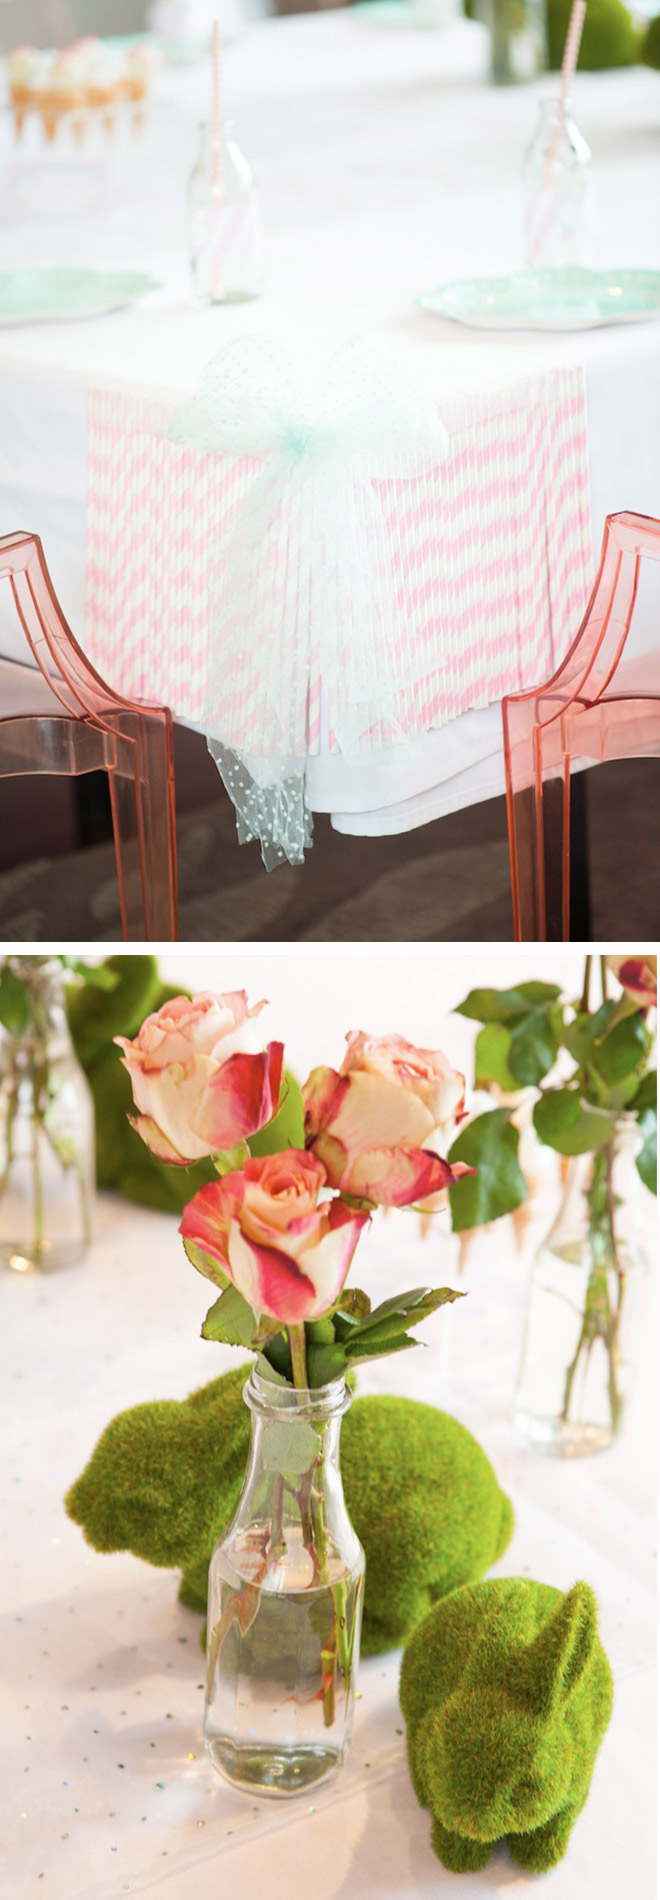 Ice Cream Party Styling and Decorations. Fresh flowers, pastel coloured paper straws and pink chairs